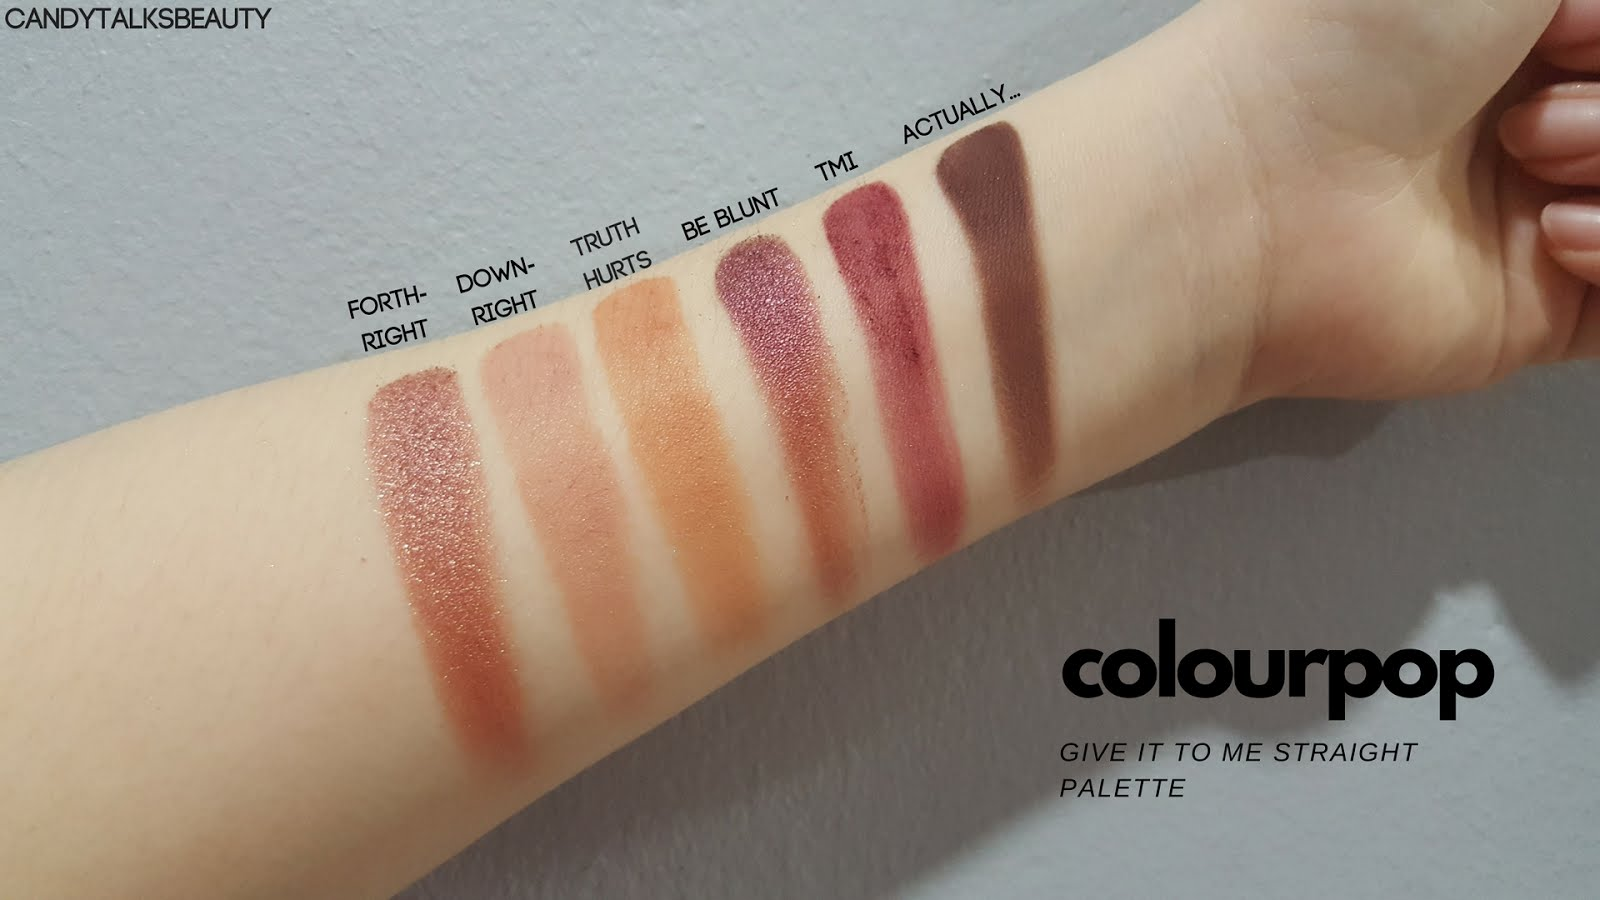 Give It To Me Straight Eye Shadow Palette  by Colourpop #13